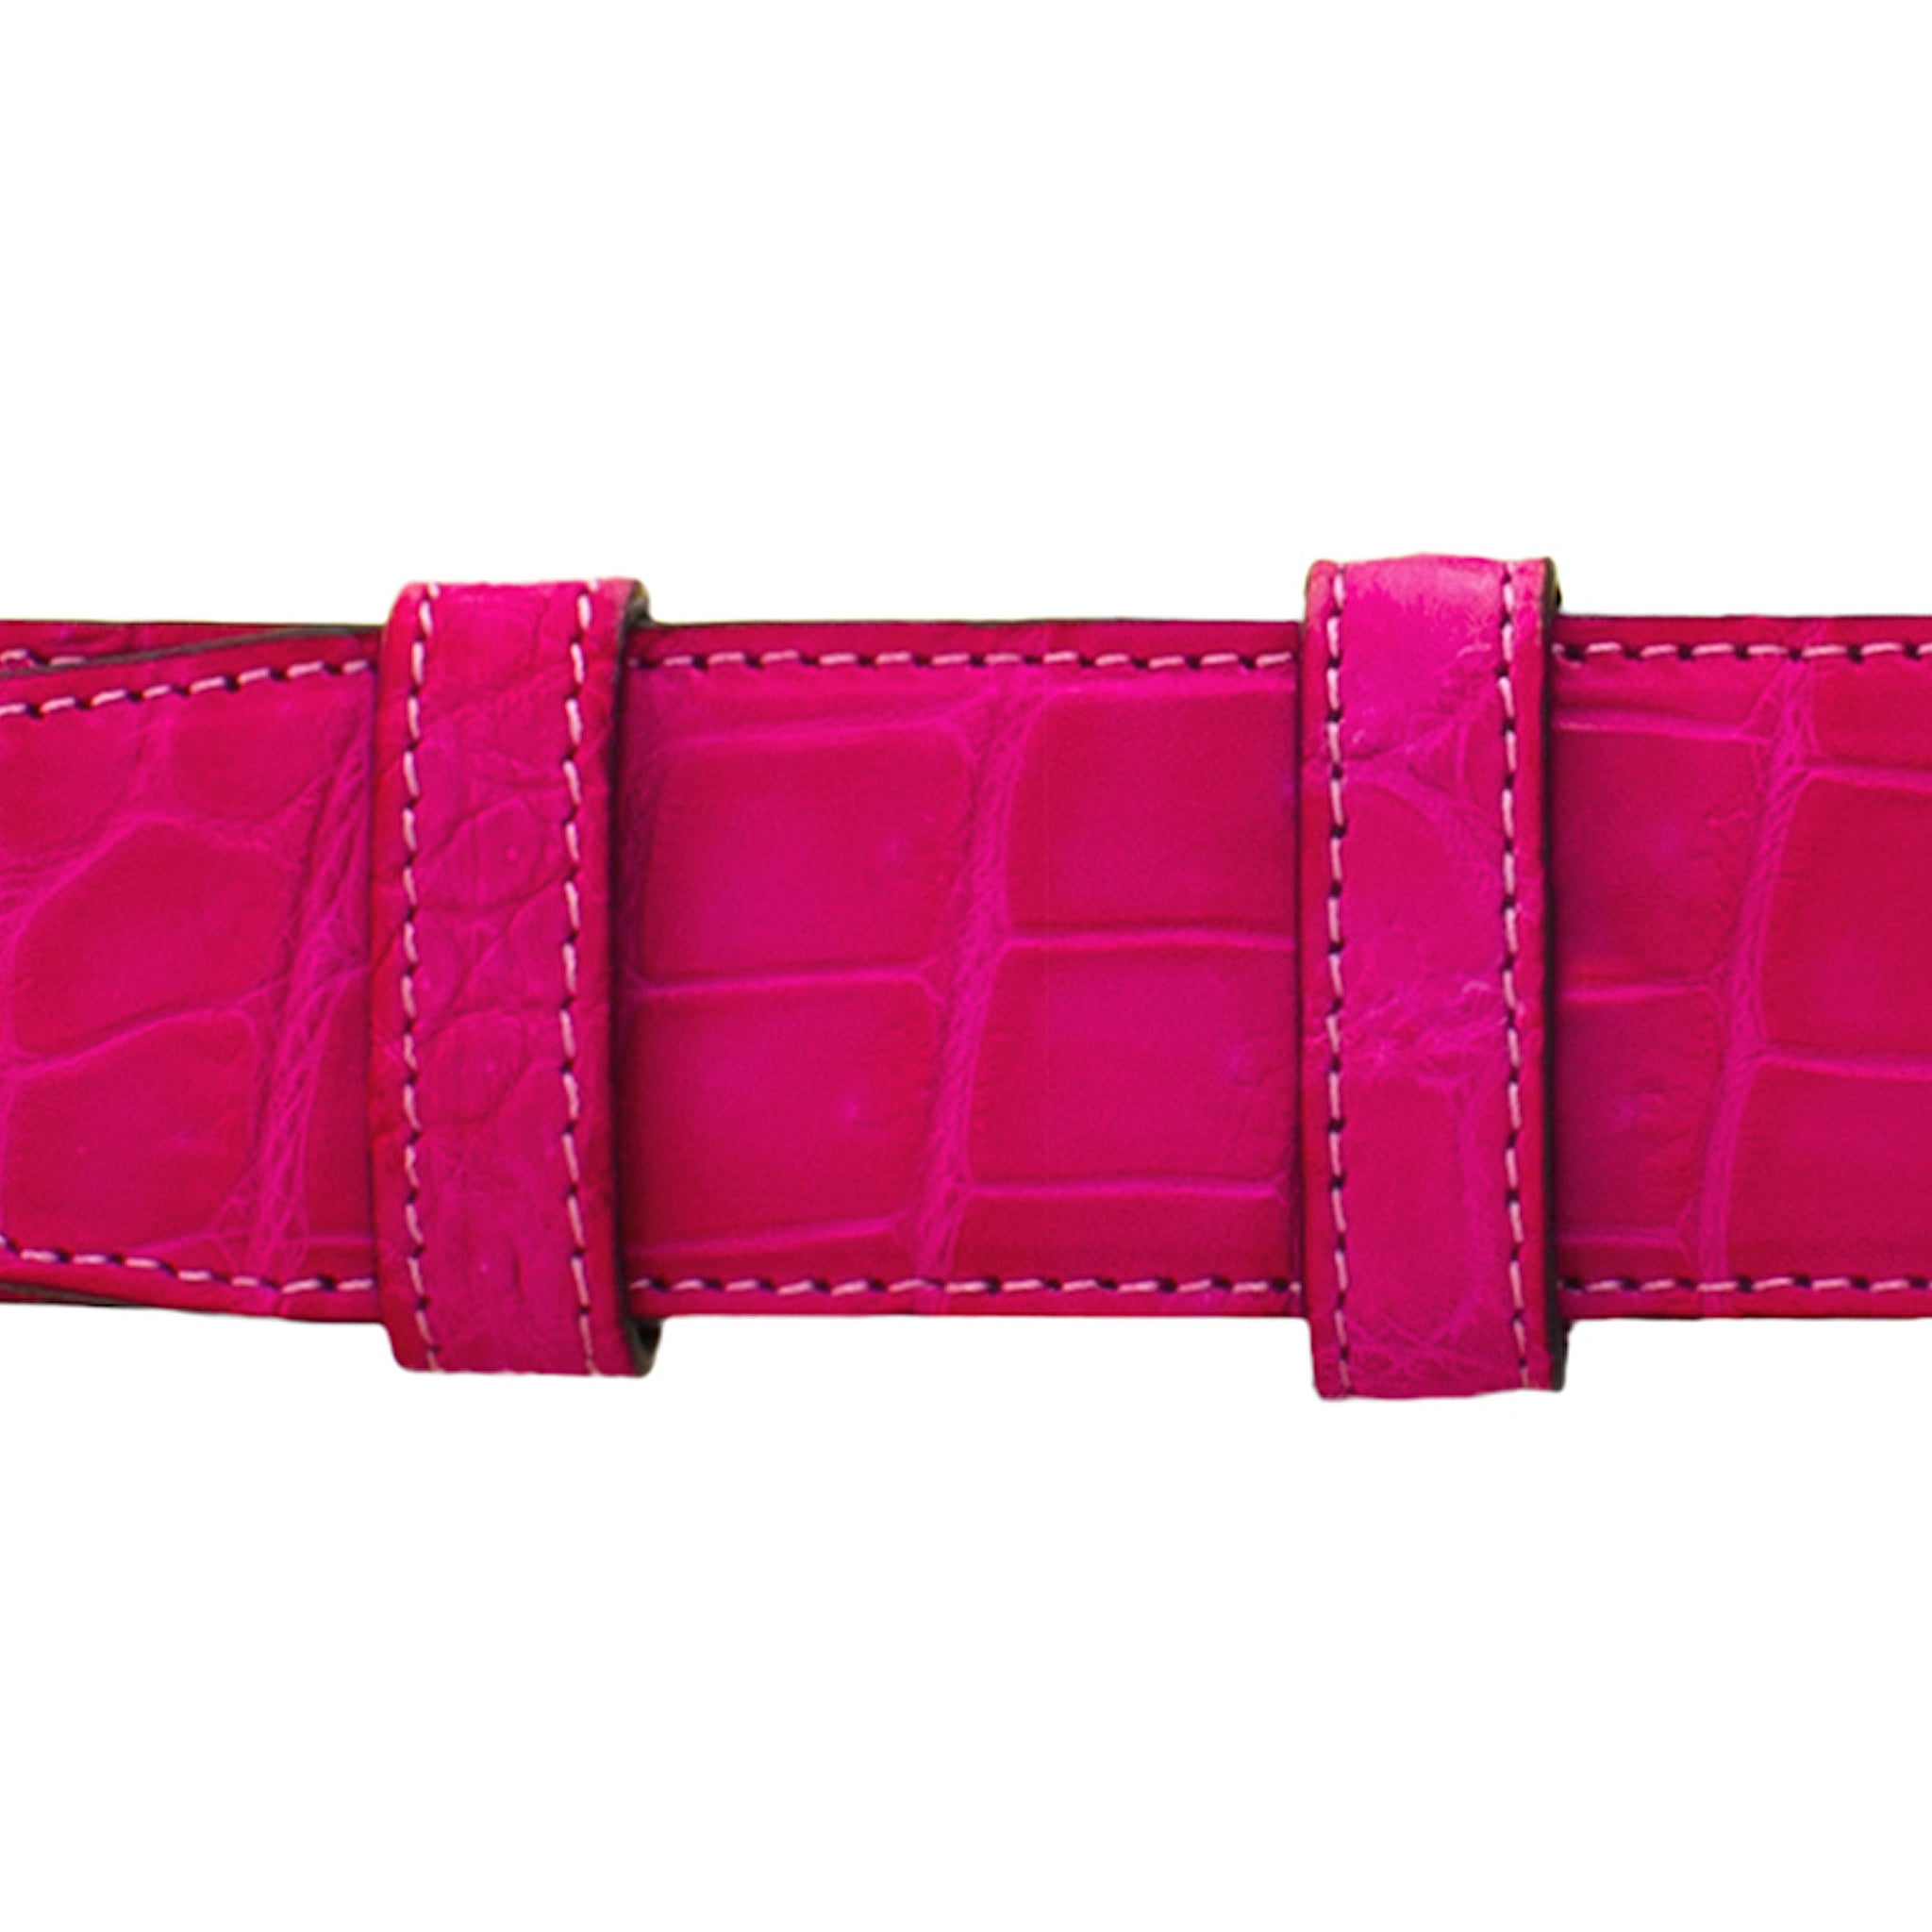 "1"" Fuchsia Seasonal Belt with Austin Casual Buckle in Polished Nickel"